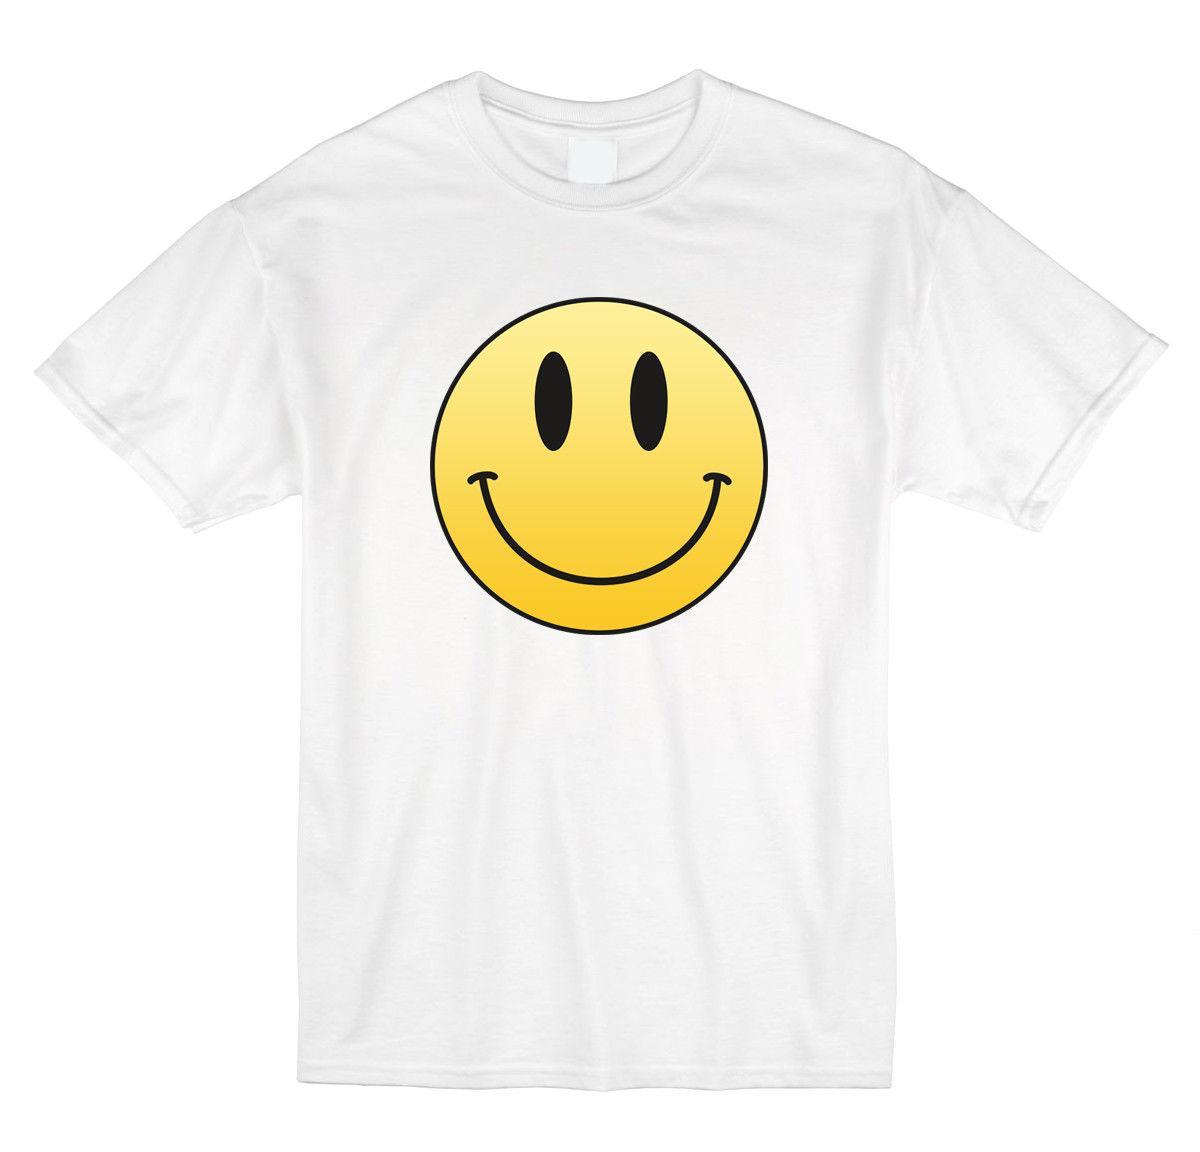 029c01c7a46b Traditional Happy Face Novelty White T Shirt Classic Happy Face Adult &  YouthFunny Unisex Casual Tshirt Awesome T Shirt Clever T Shirts From  Burnthebeans, ...